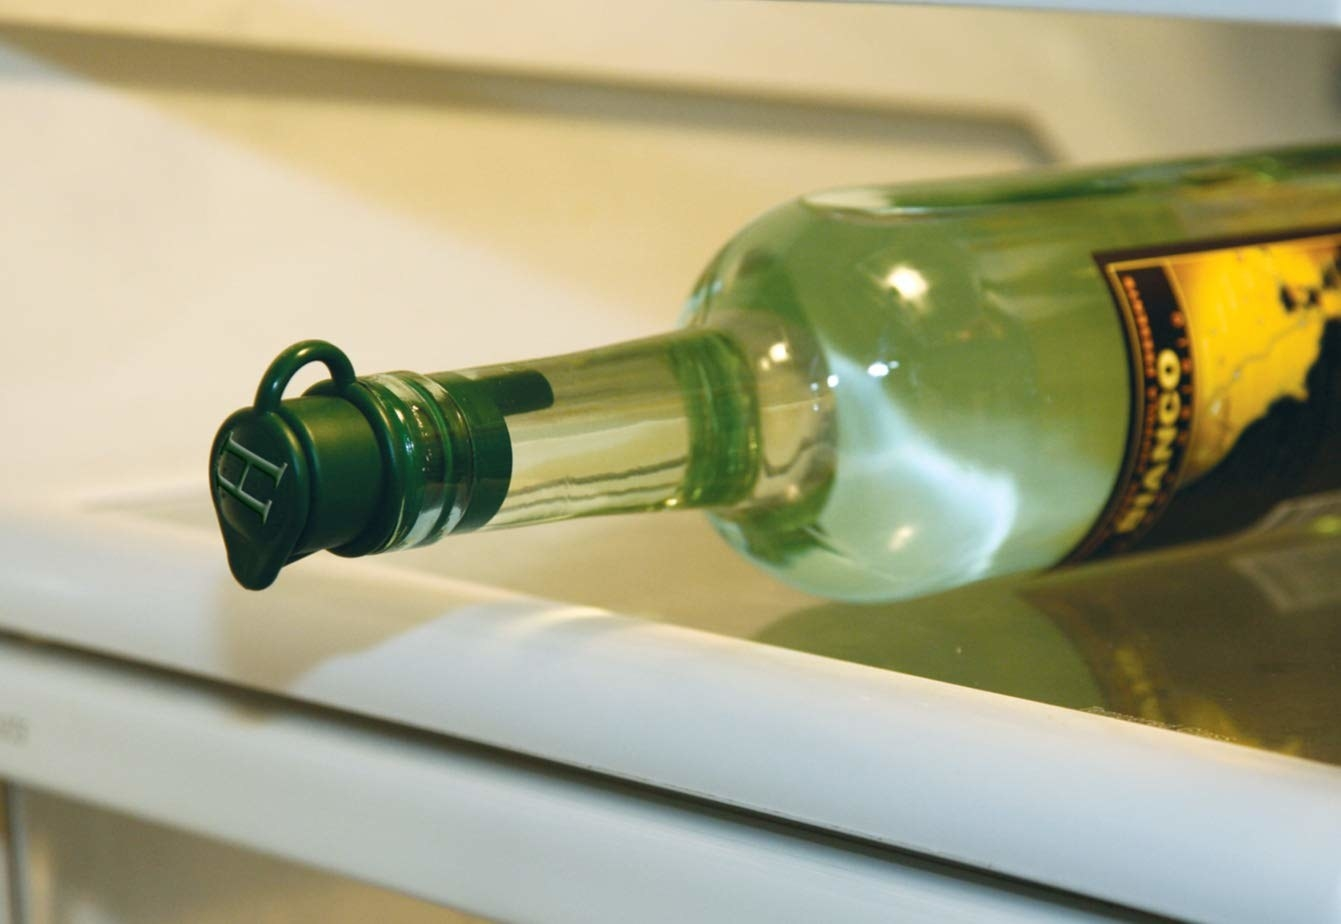 The corker inserted into a wine bottle, which is lying on its side in the fridge